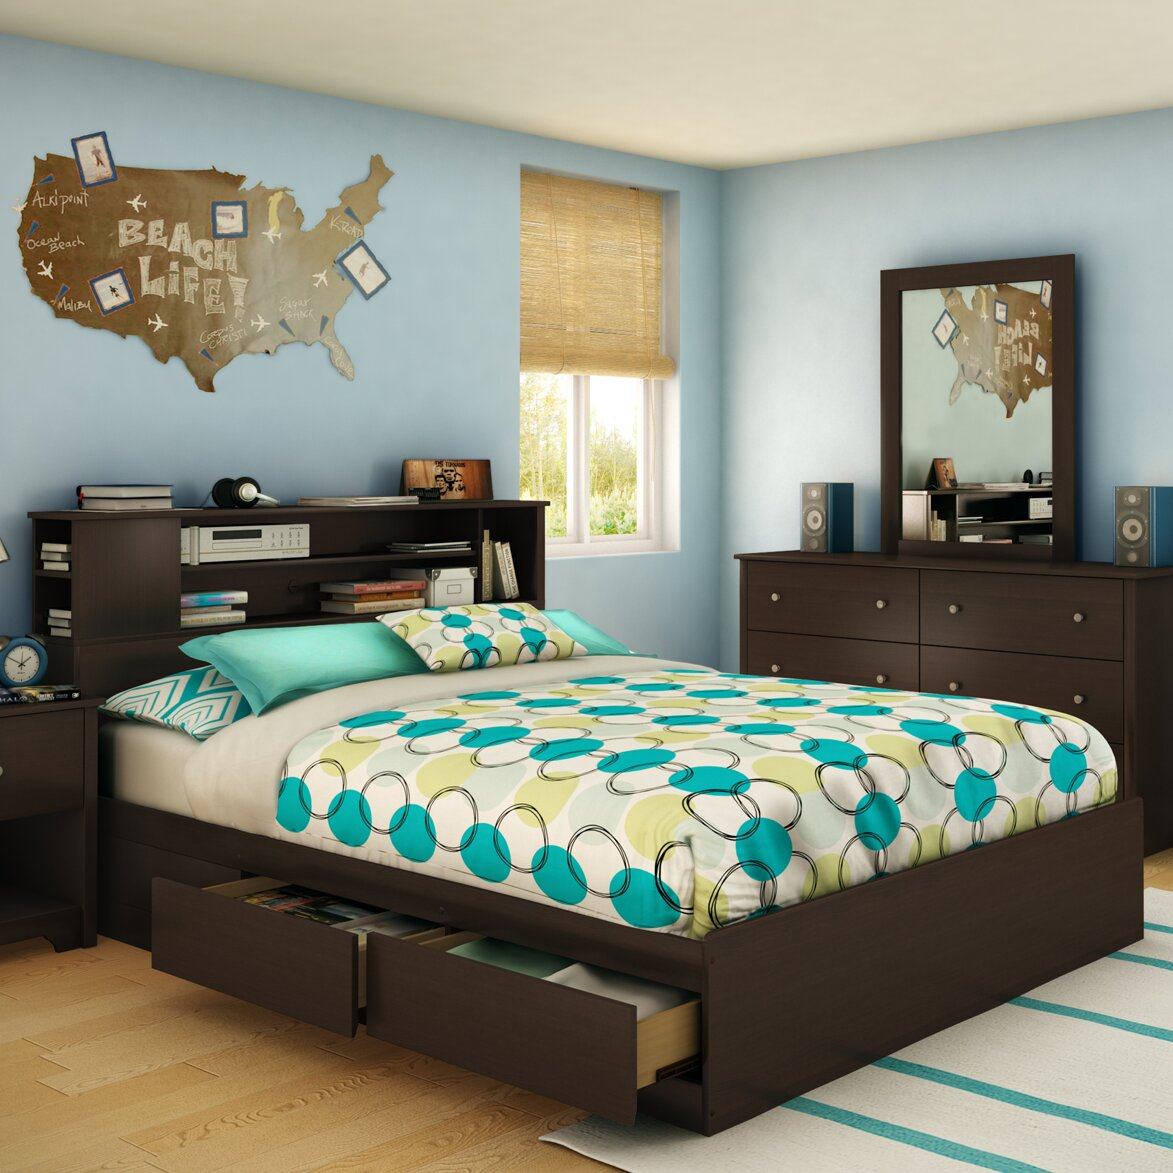 South Shore Step One Platform Bed Review